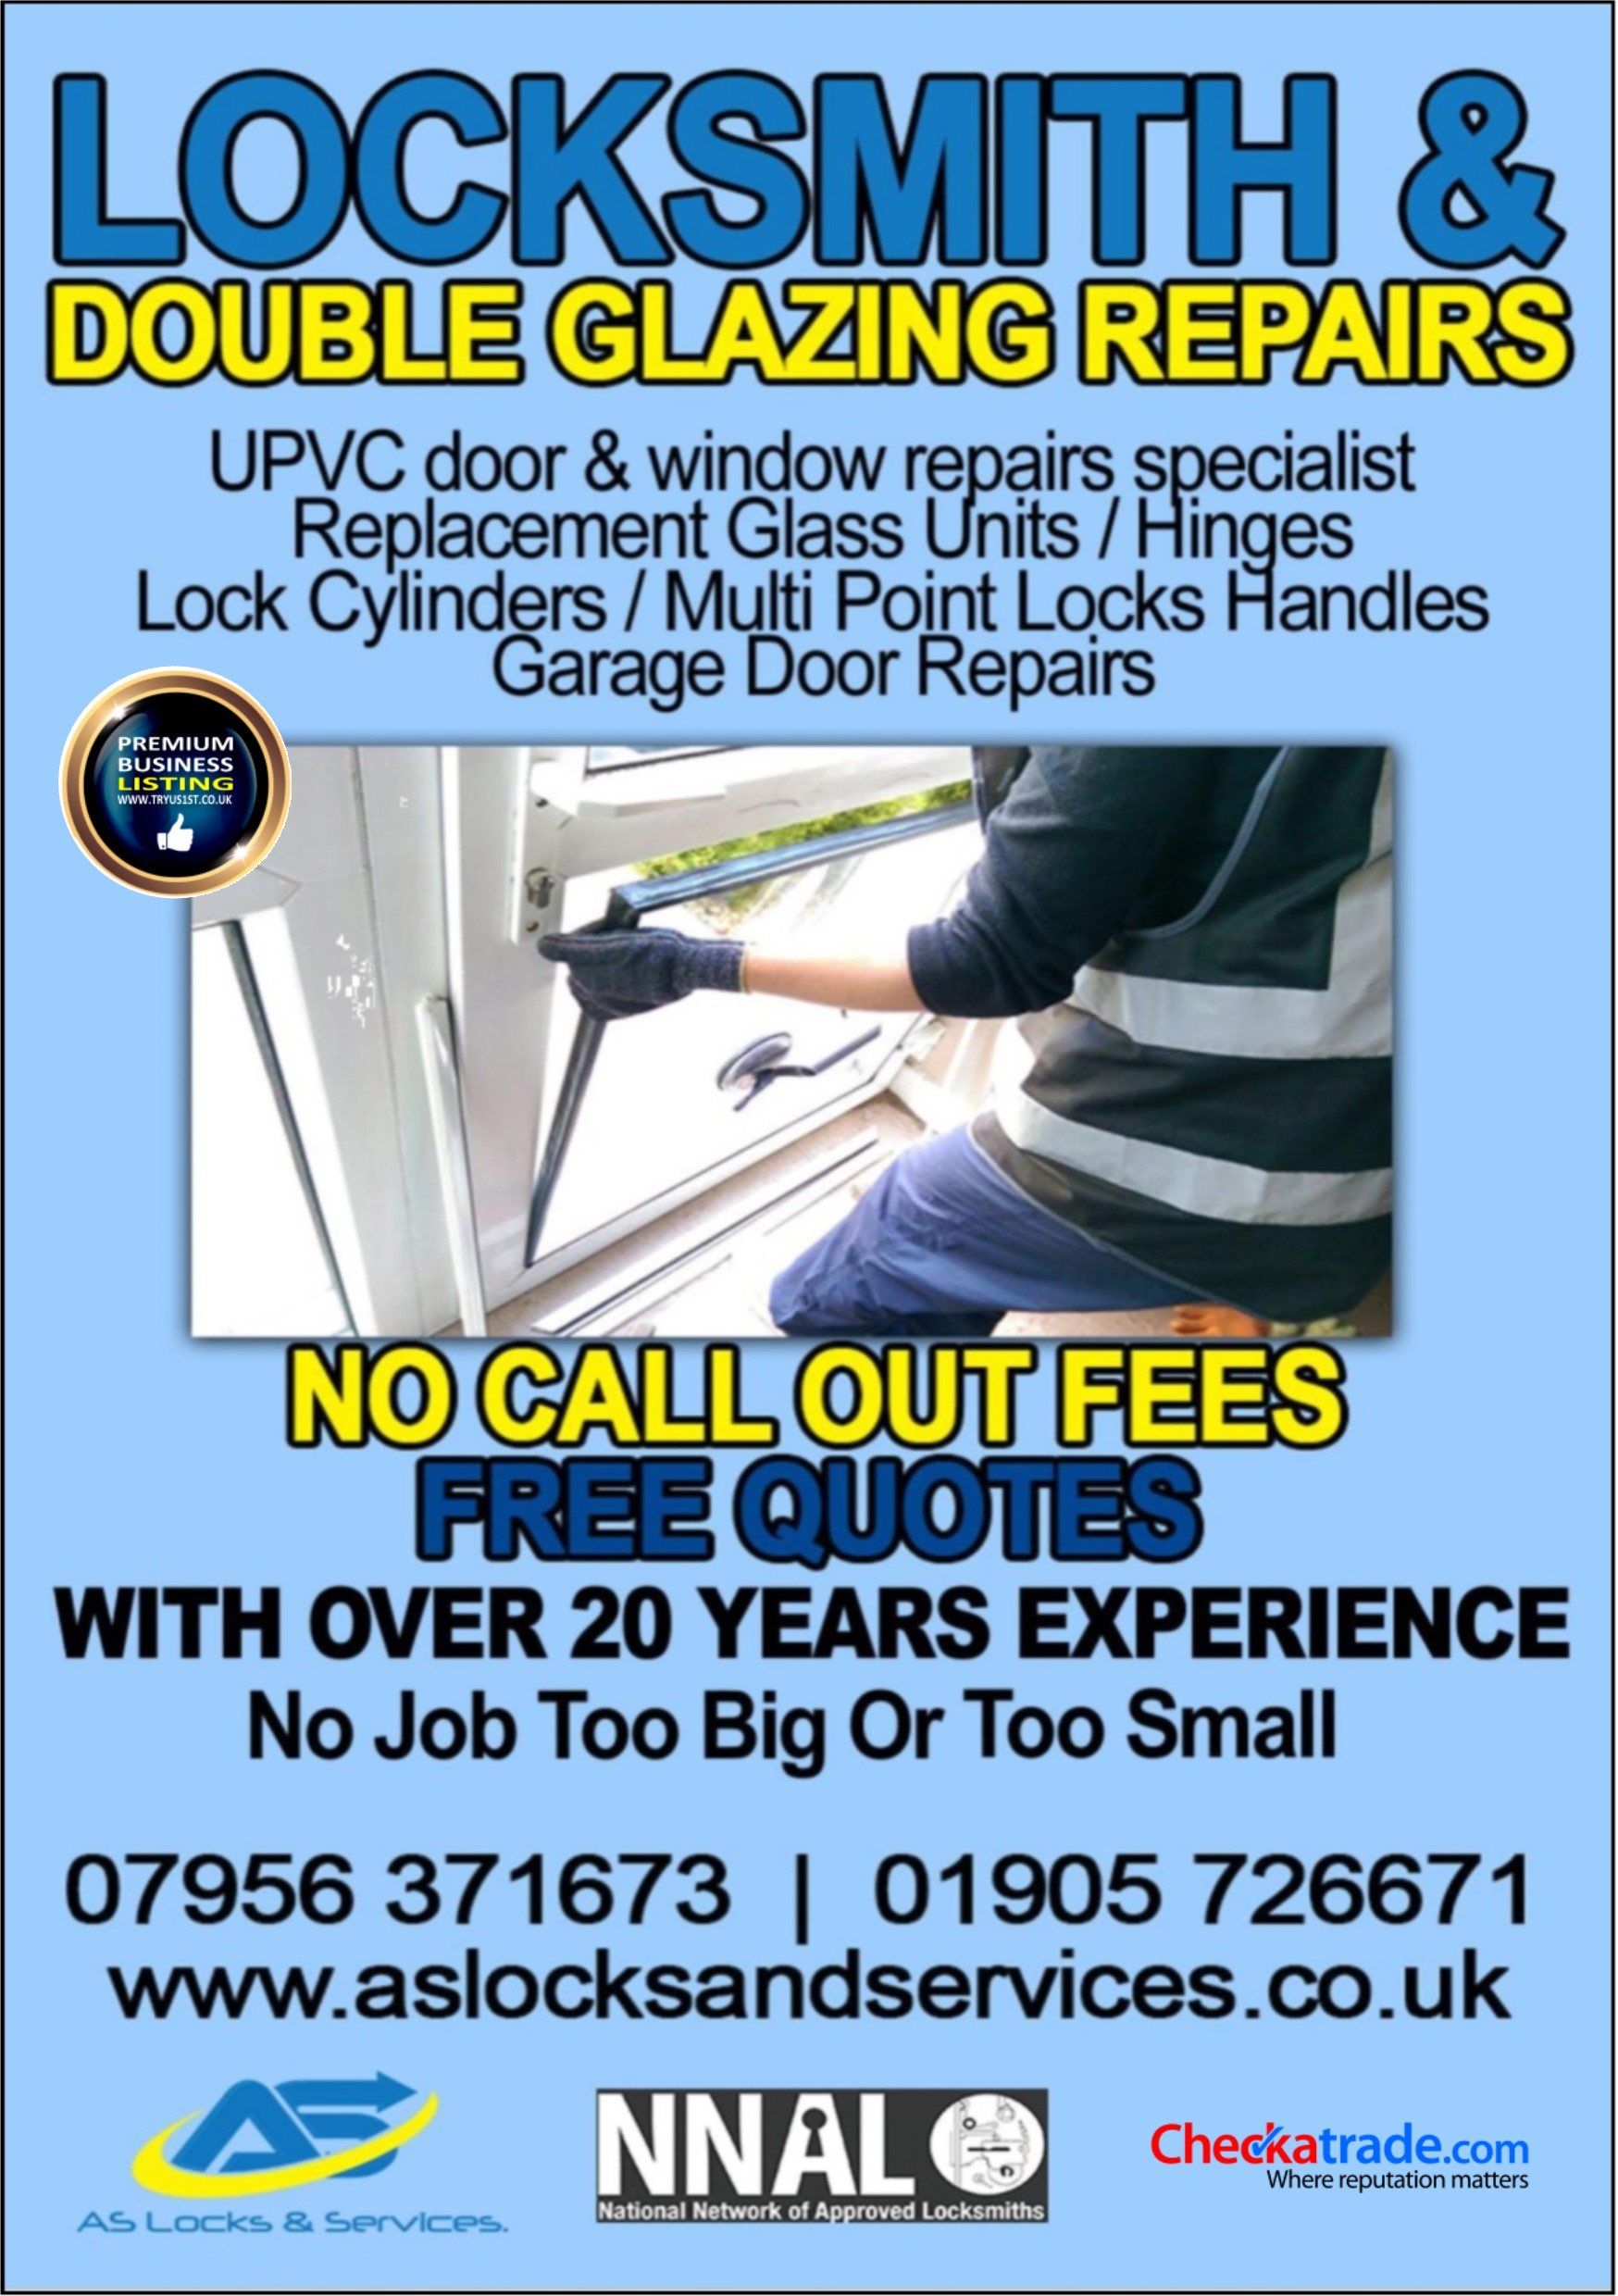 AS Locks Locksmith & Double Glazing Repairs